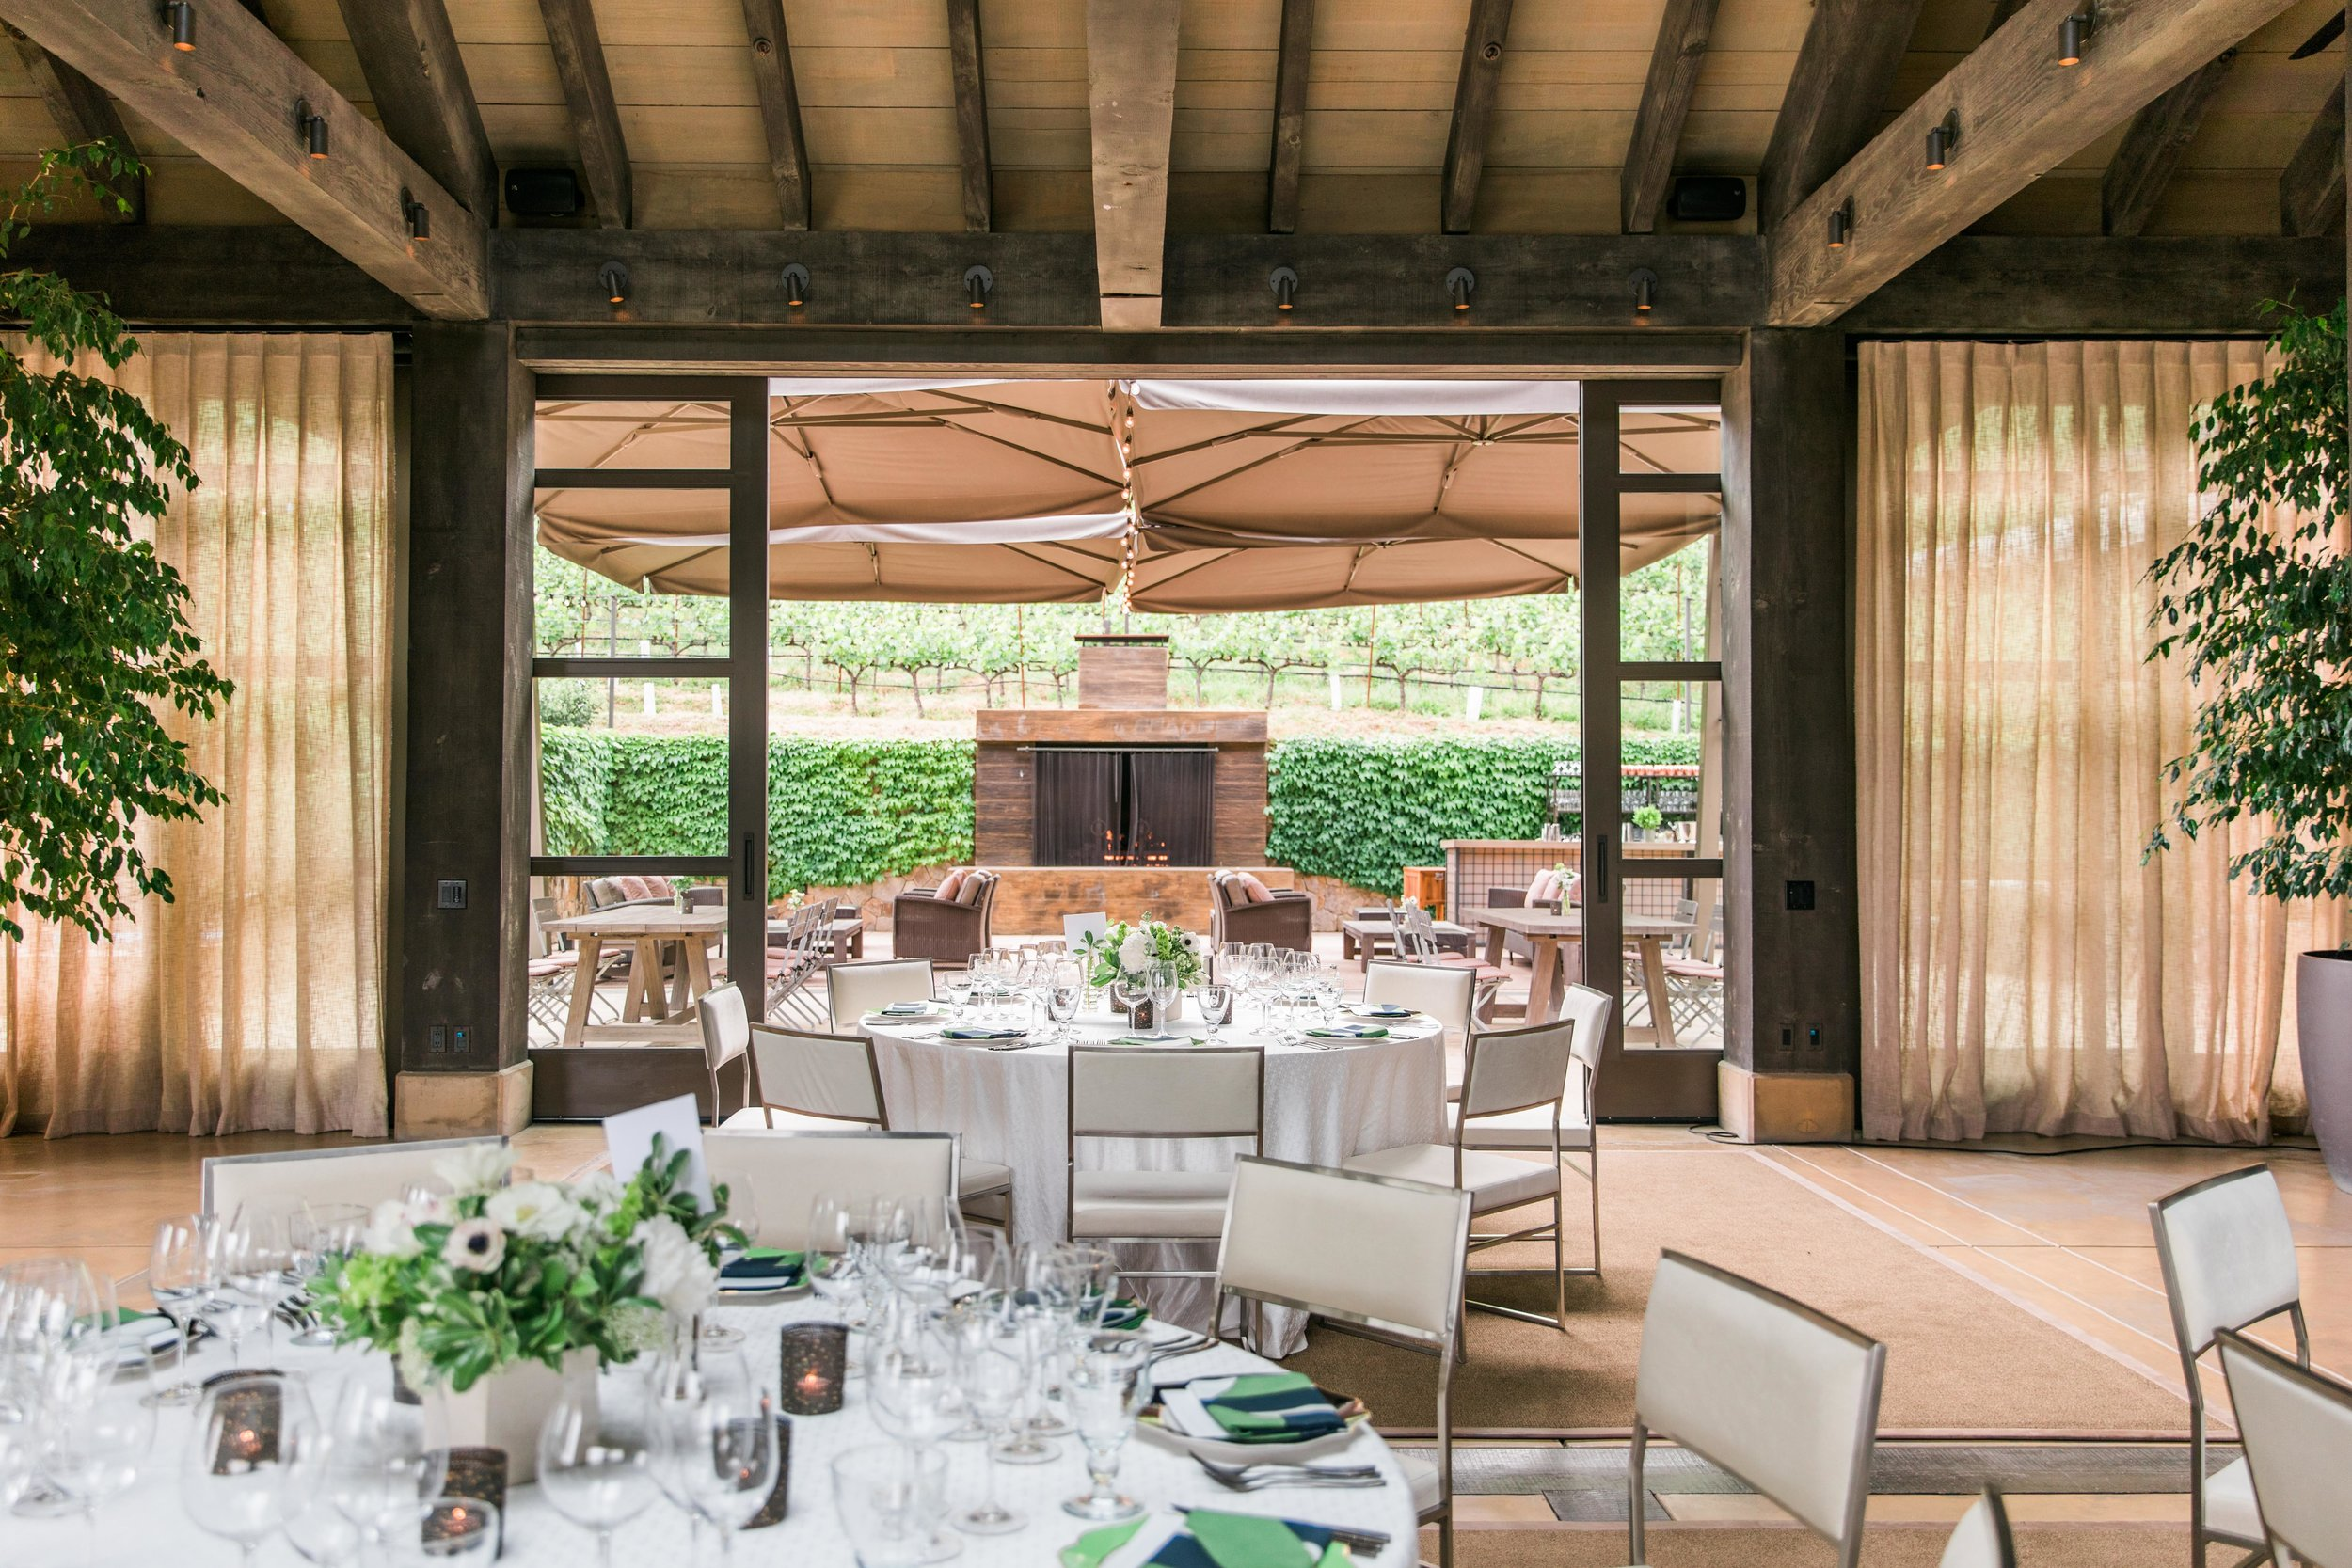 Meadowood-Event-Photos-by-JBJ-Pictures-27.jpg